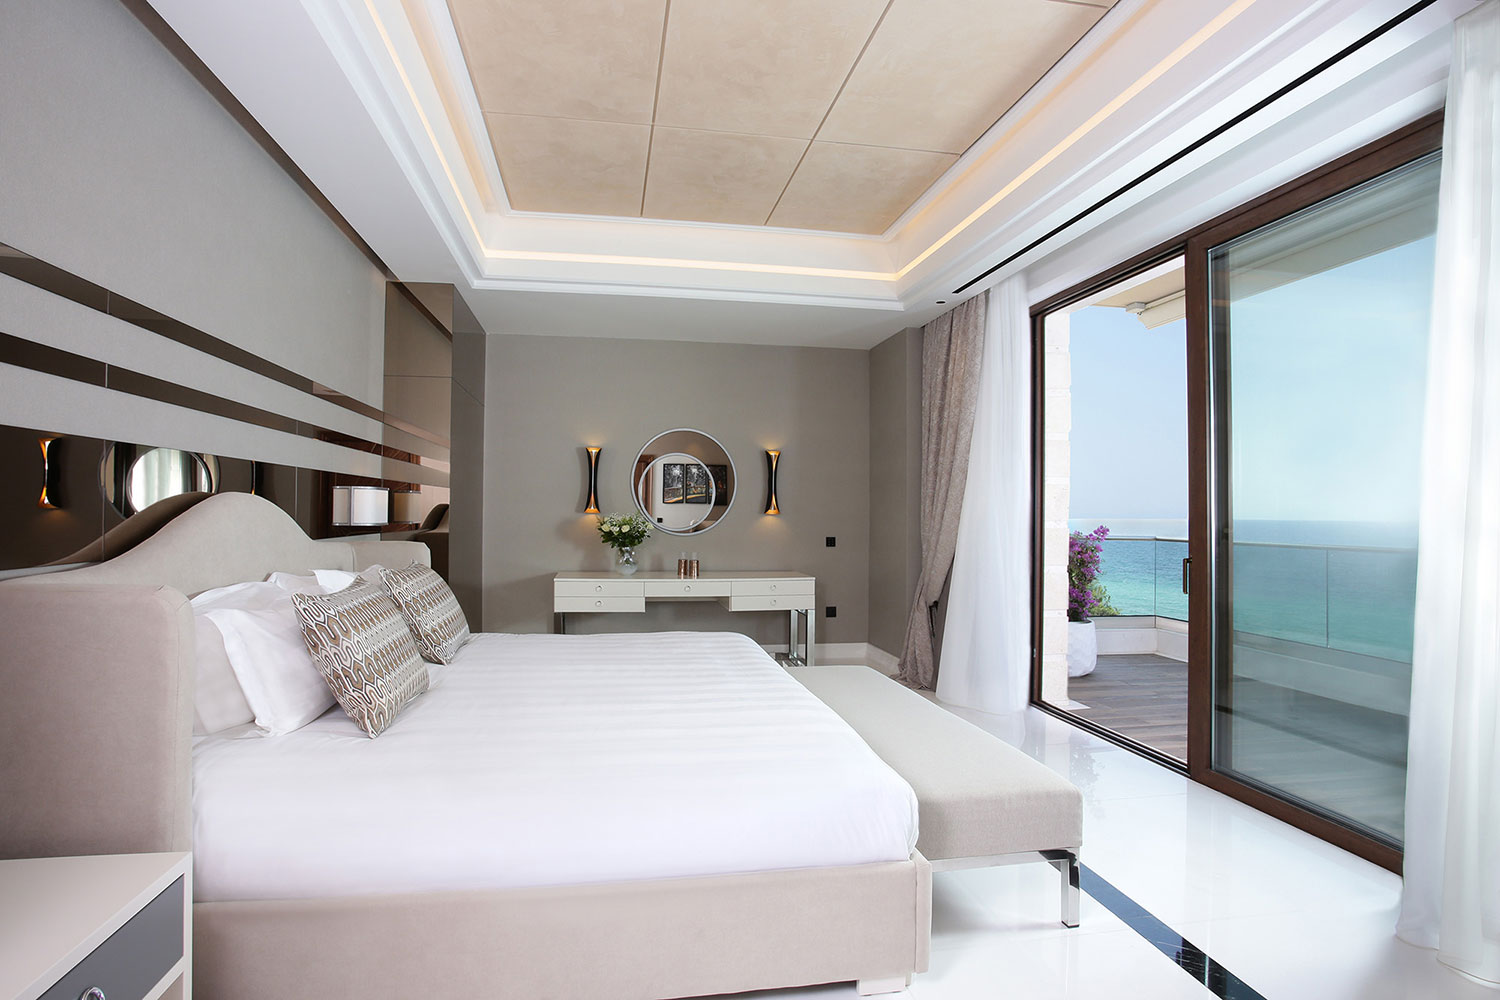 Royal Suite Master Bedroom. Pomegranate Wellness Spa Hotel